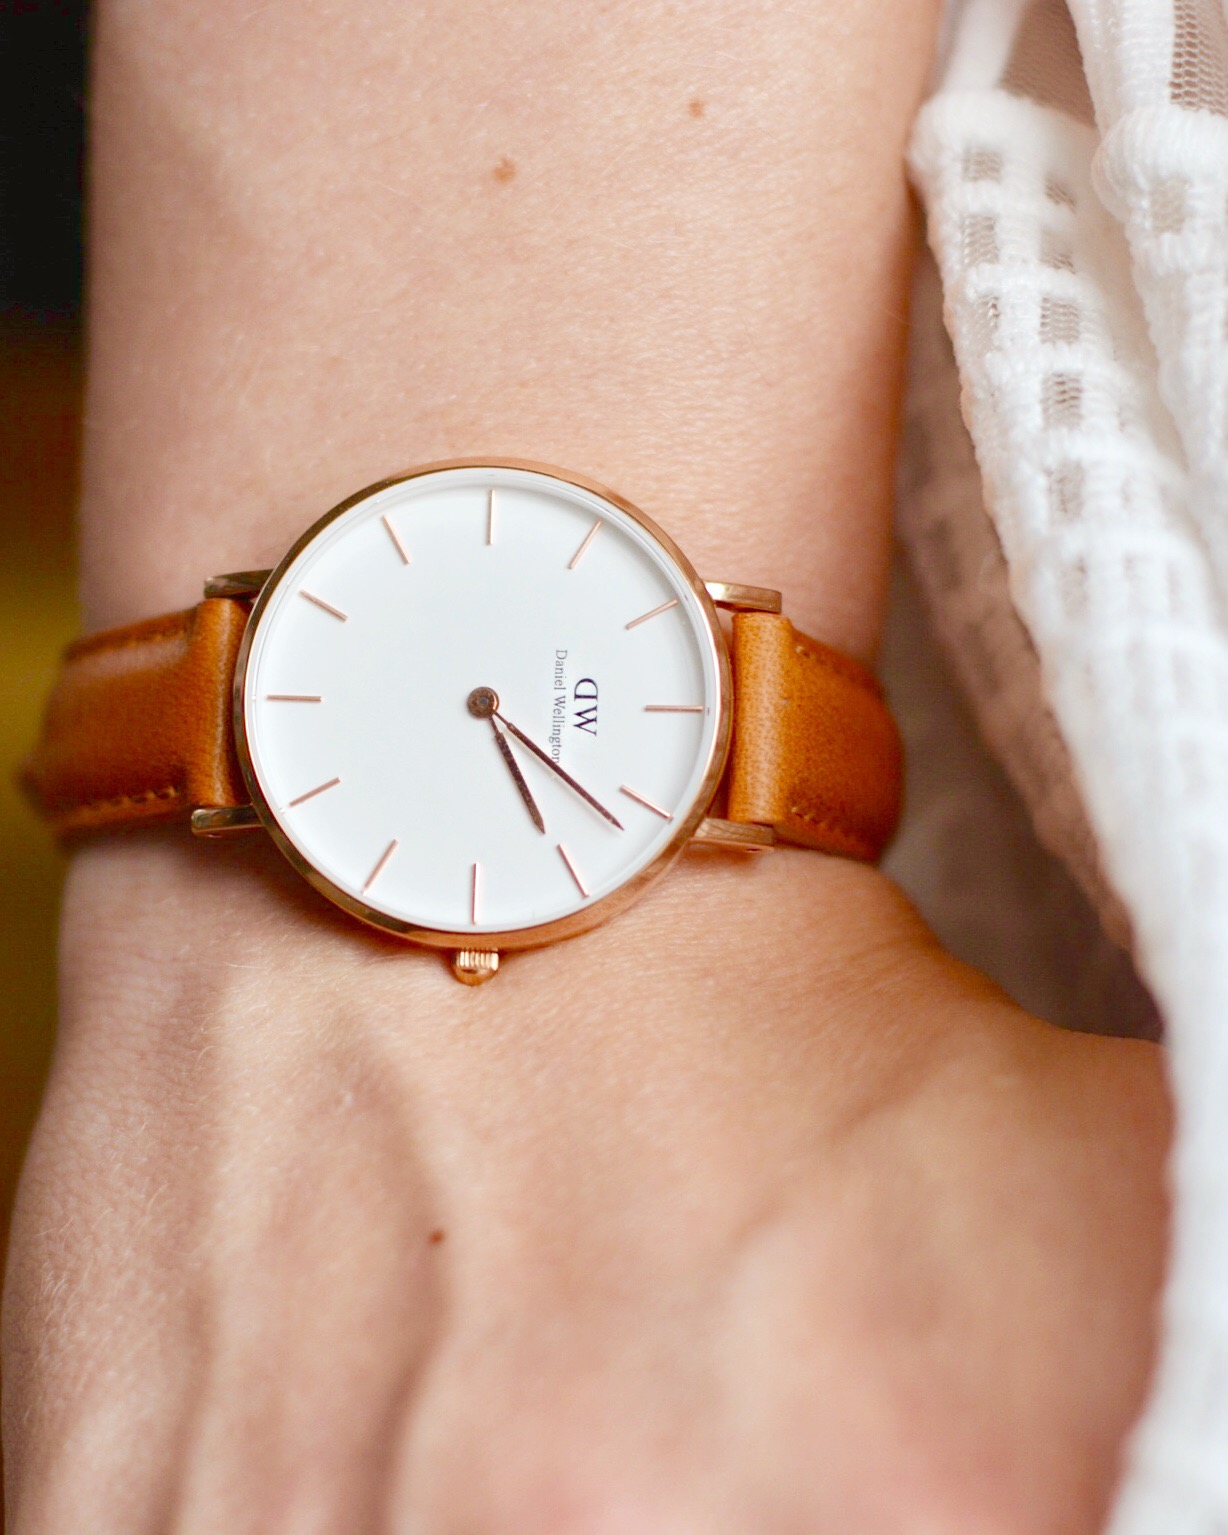 Daniel wellington's iconic watches are available in stores and online.